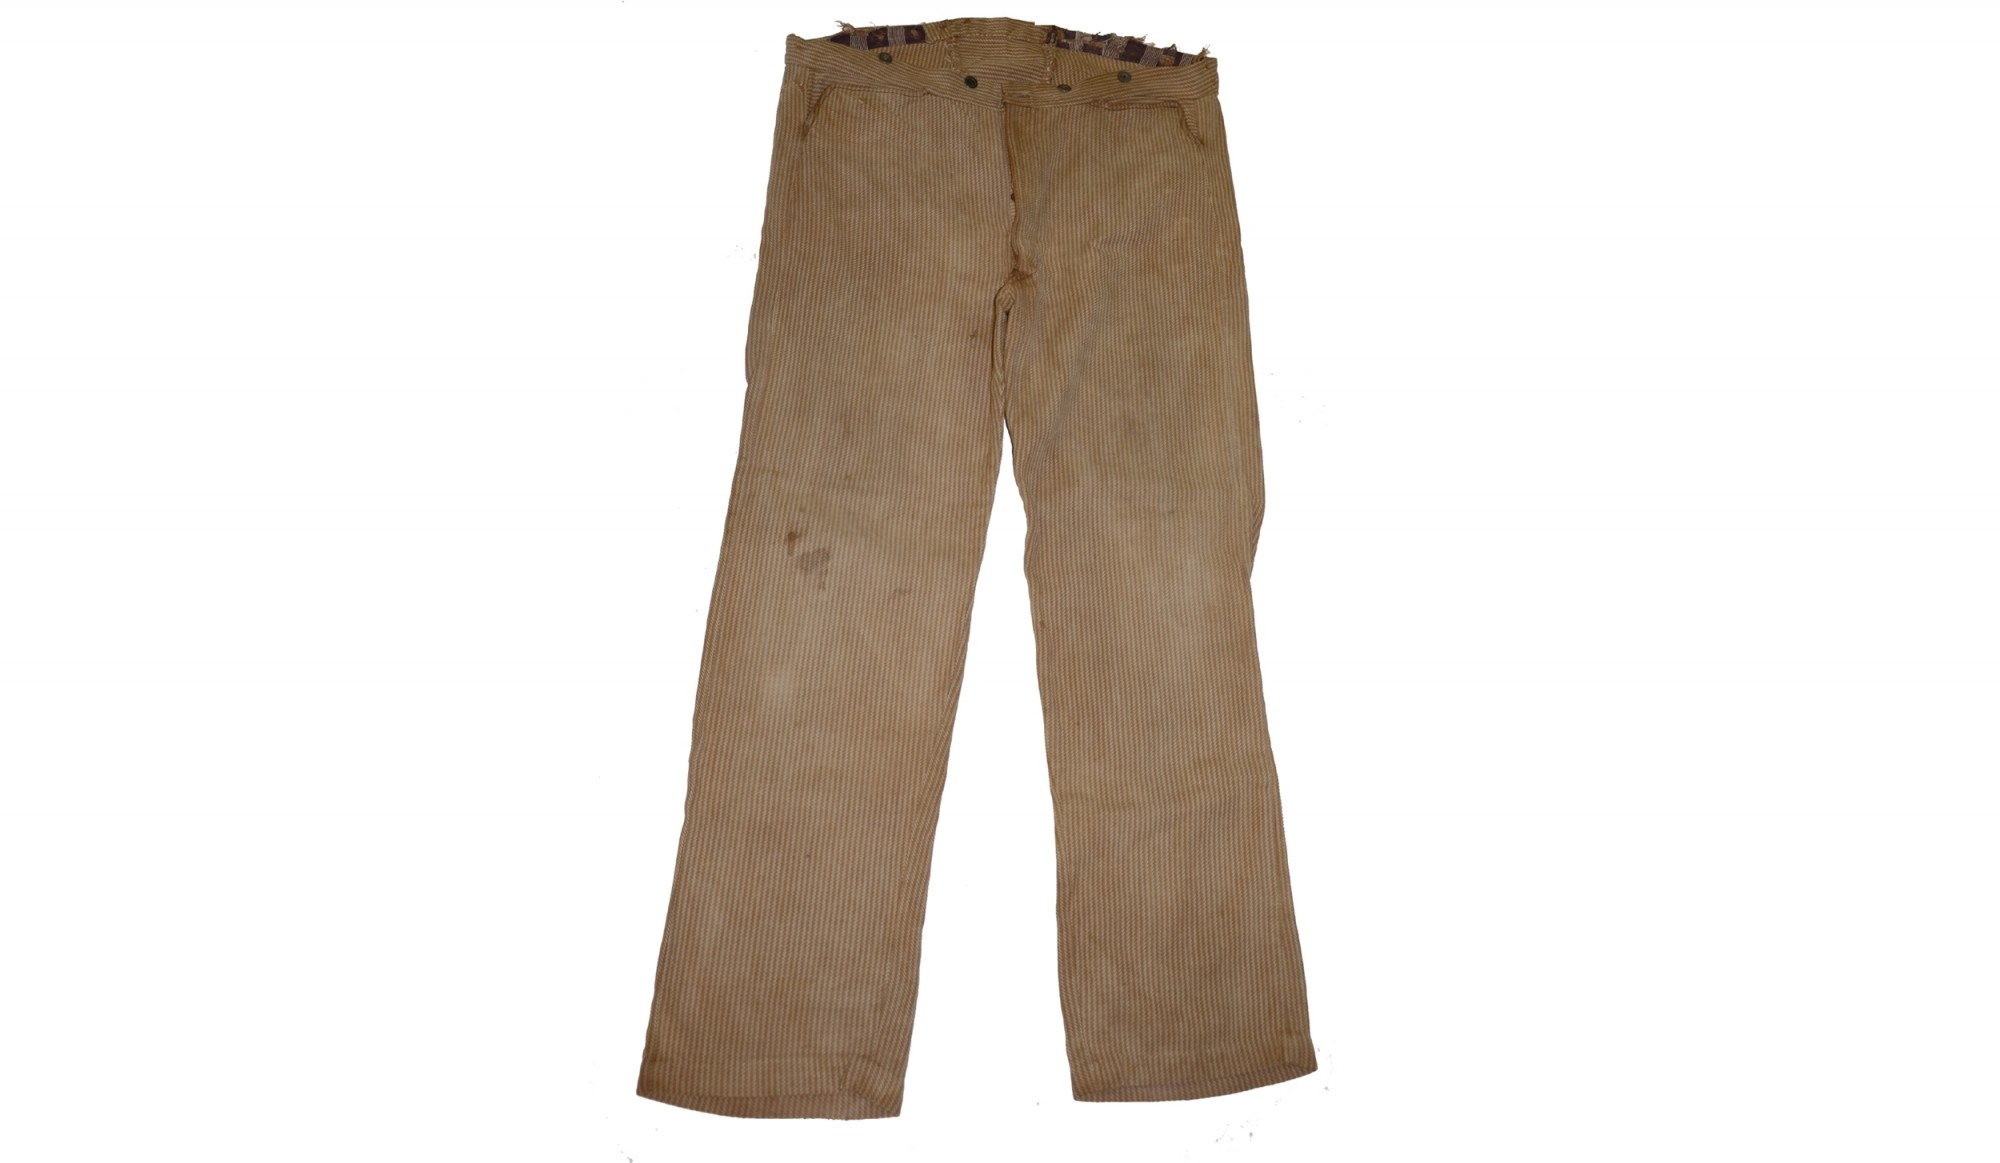 CIVILIAN TROUSERS